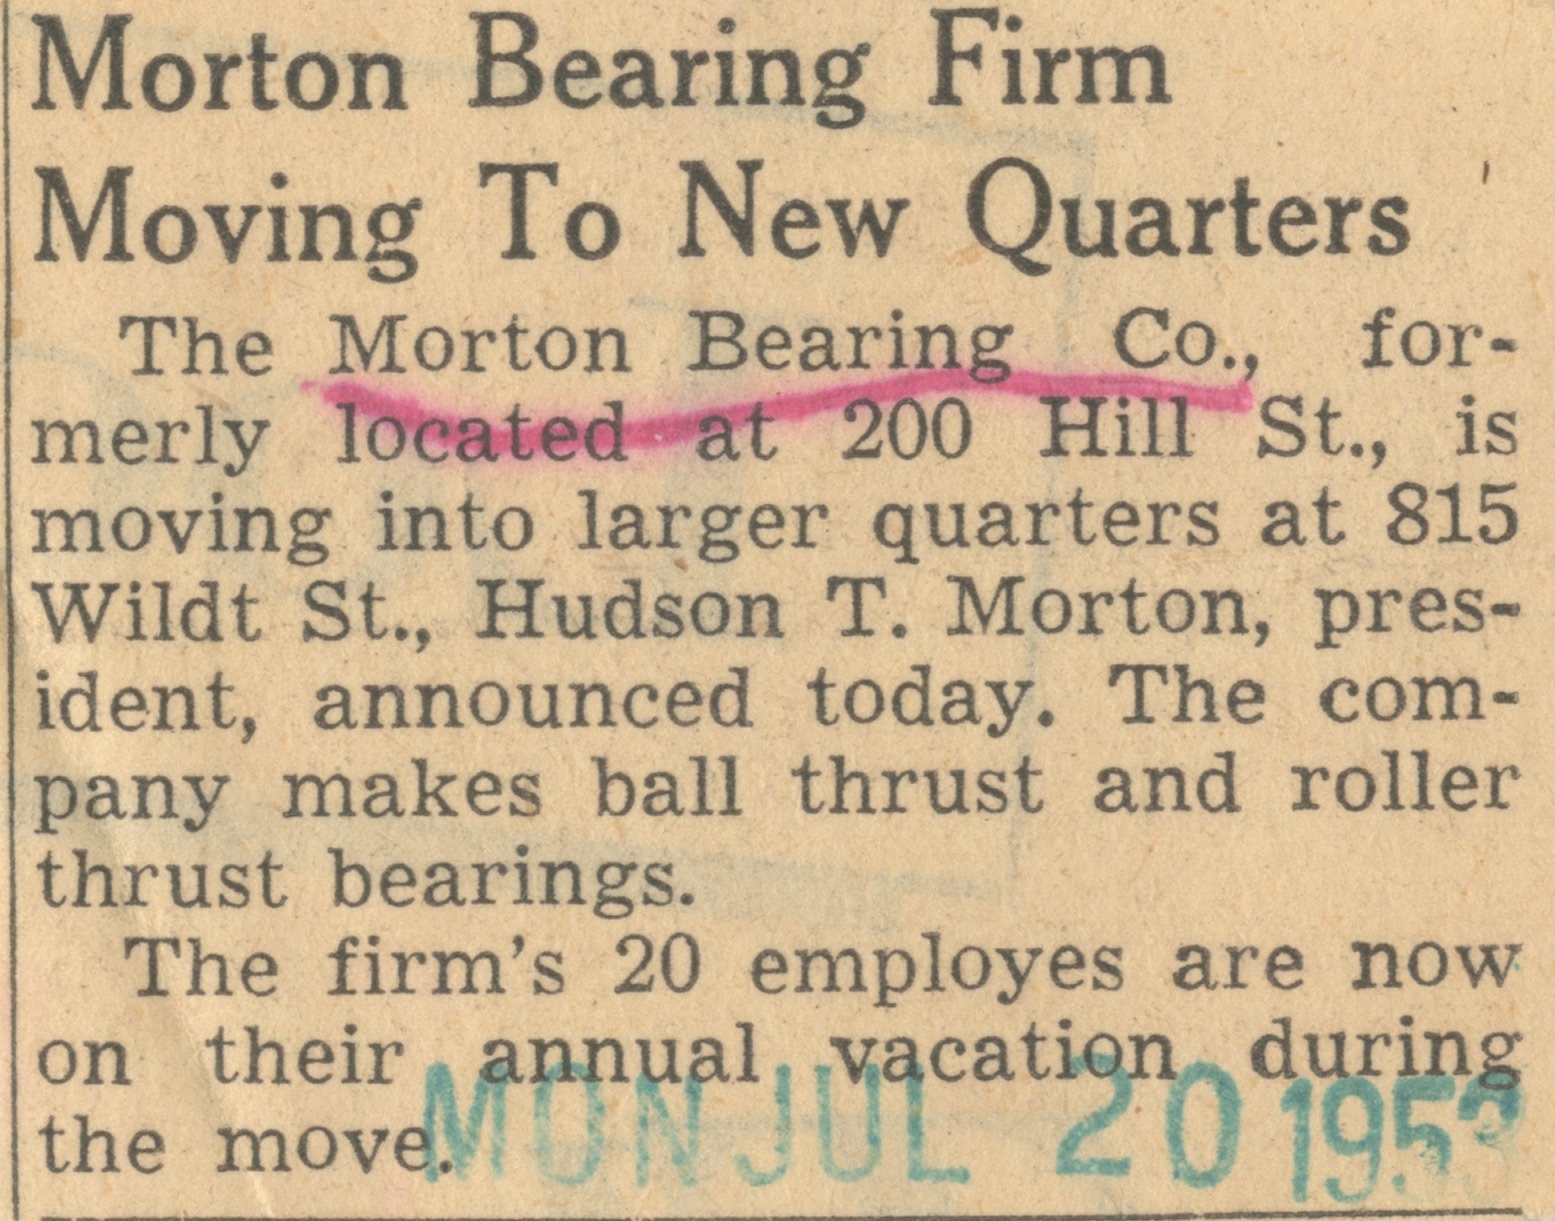 Morton Bearing Firm Moving To New Quarters image